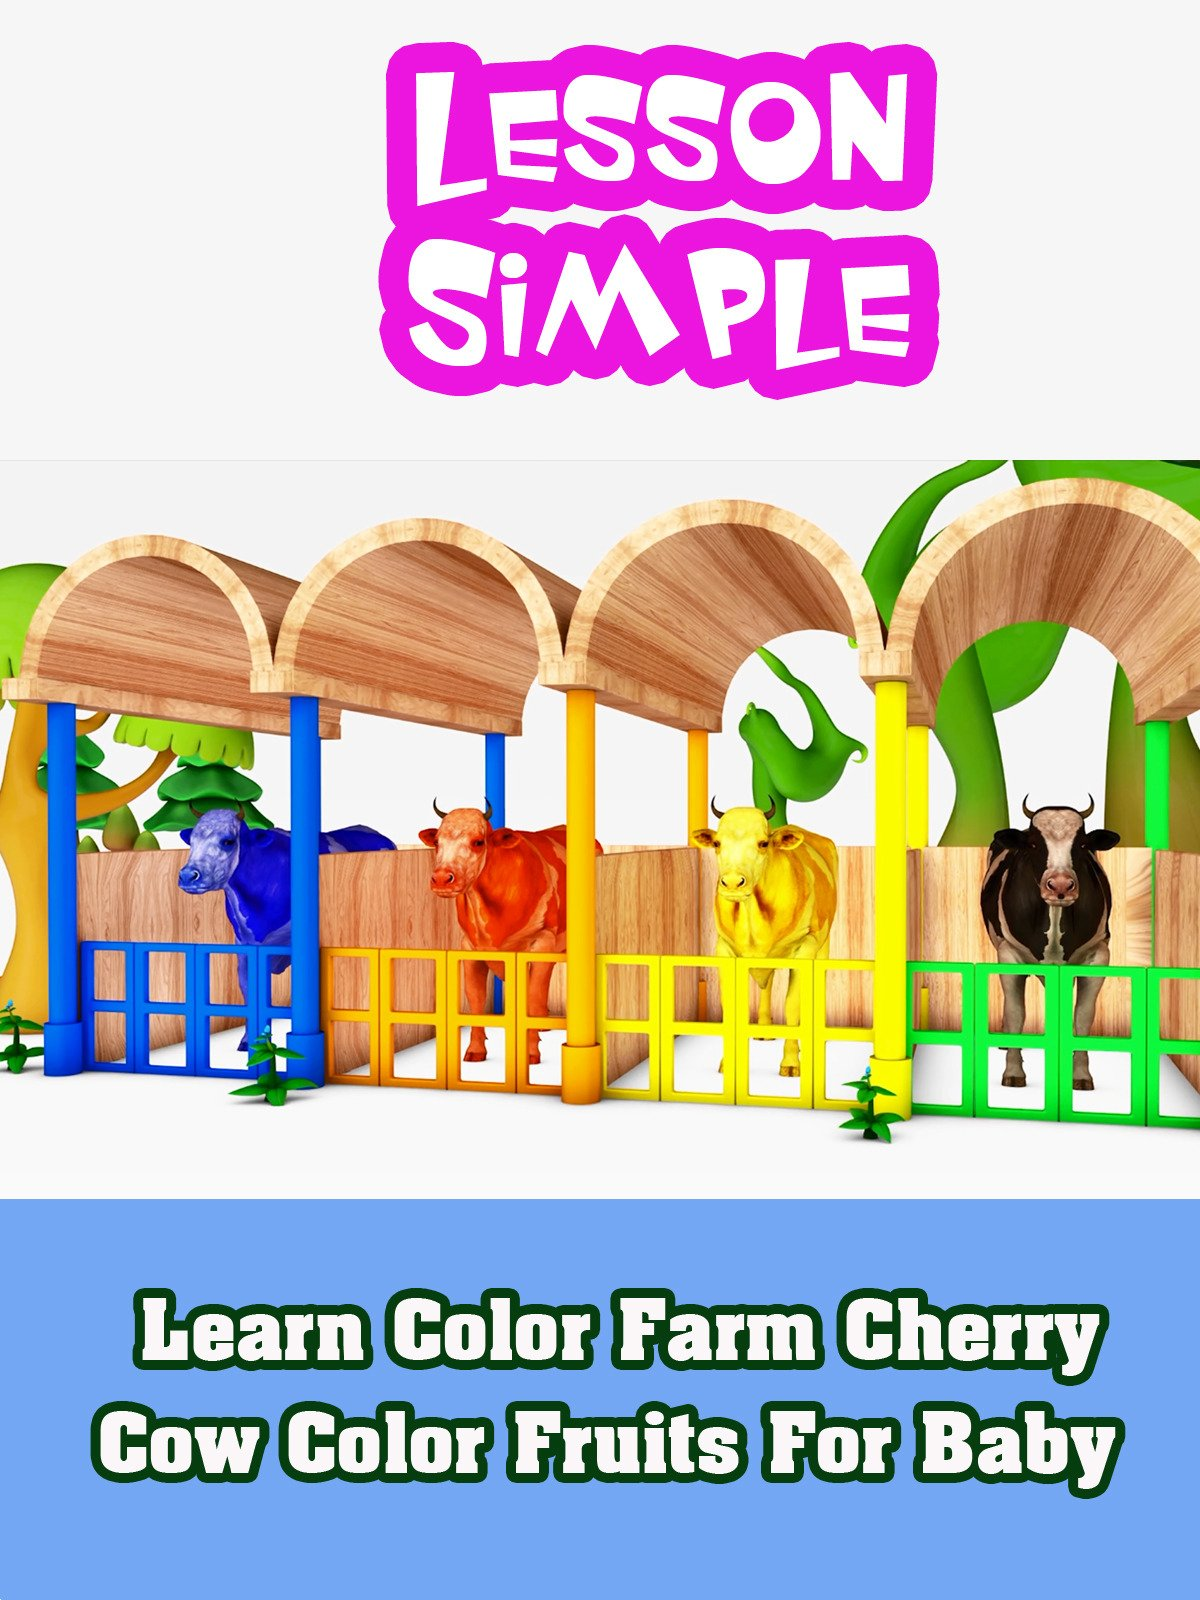 Learn Color Farm Cherry Cow Color Fruits For Baby